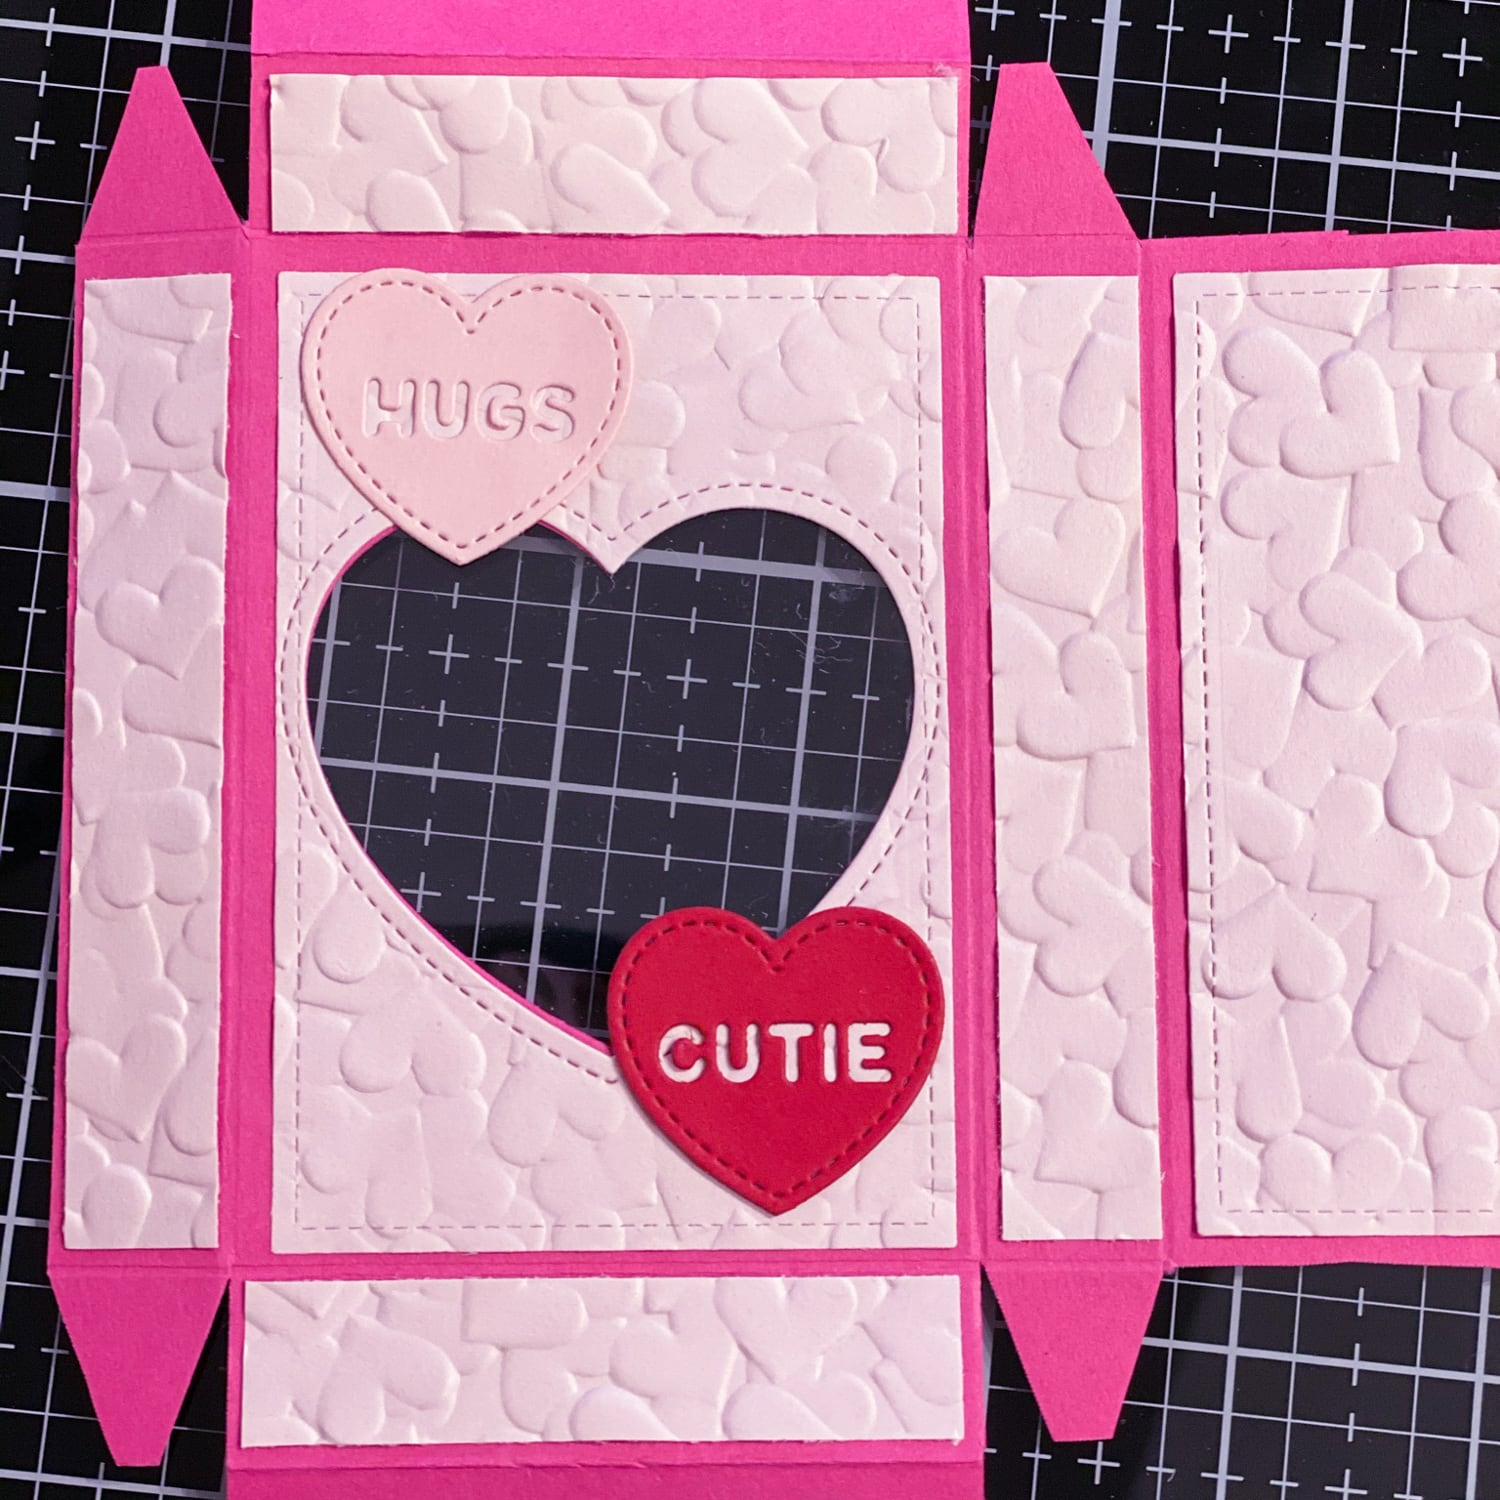 embossed heart paper attached to heart candy valentine's day boxes